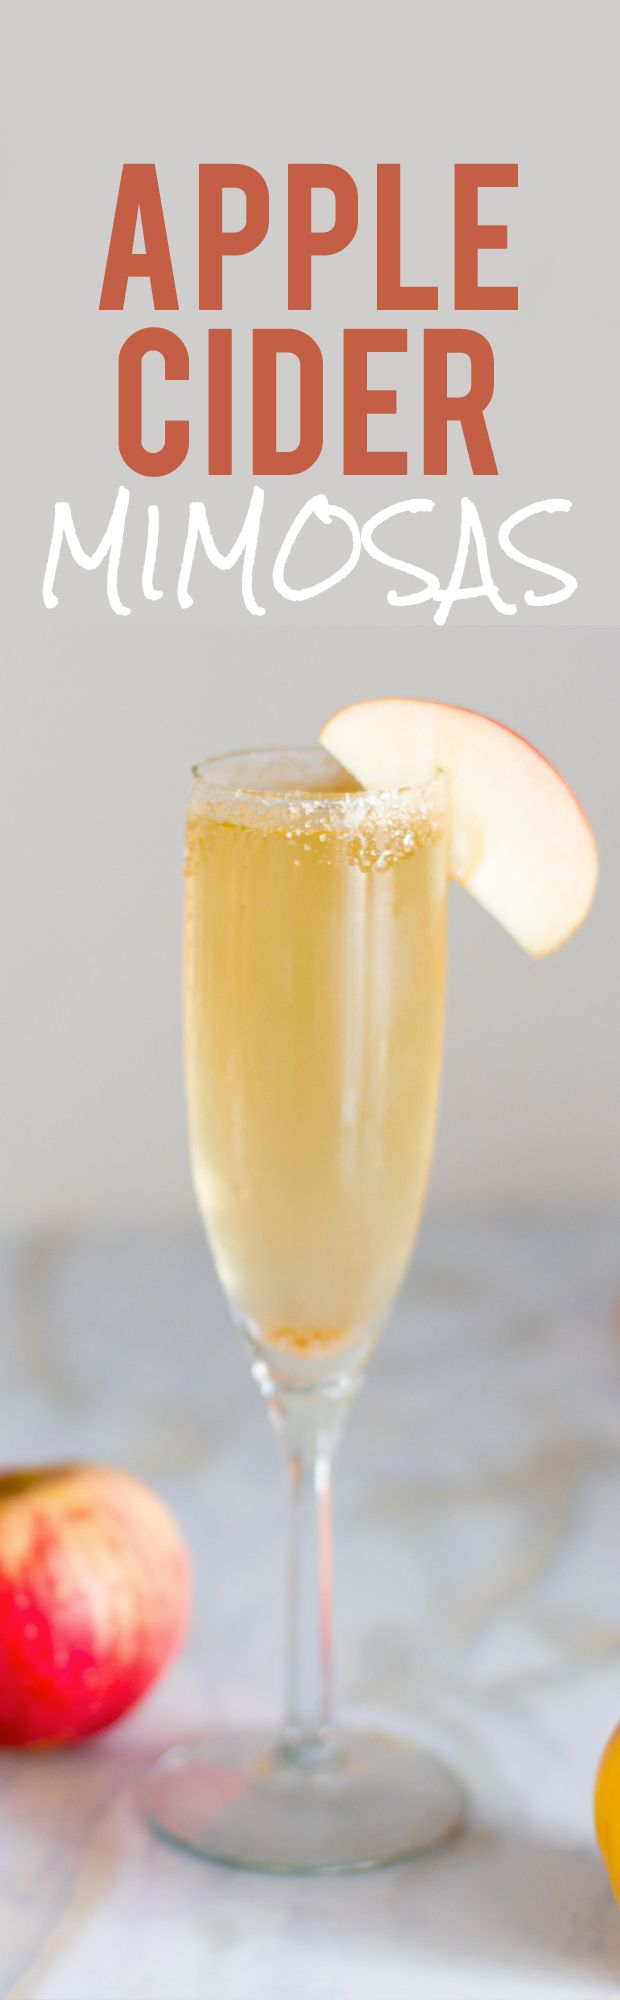 Apple Cider Mimosas Will Make You Even More Grateful This Thanksgiving